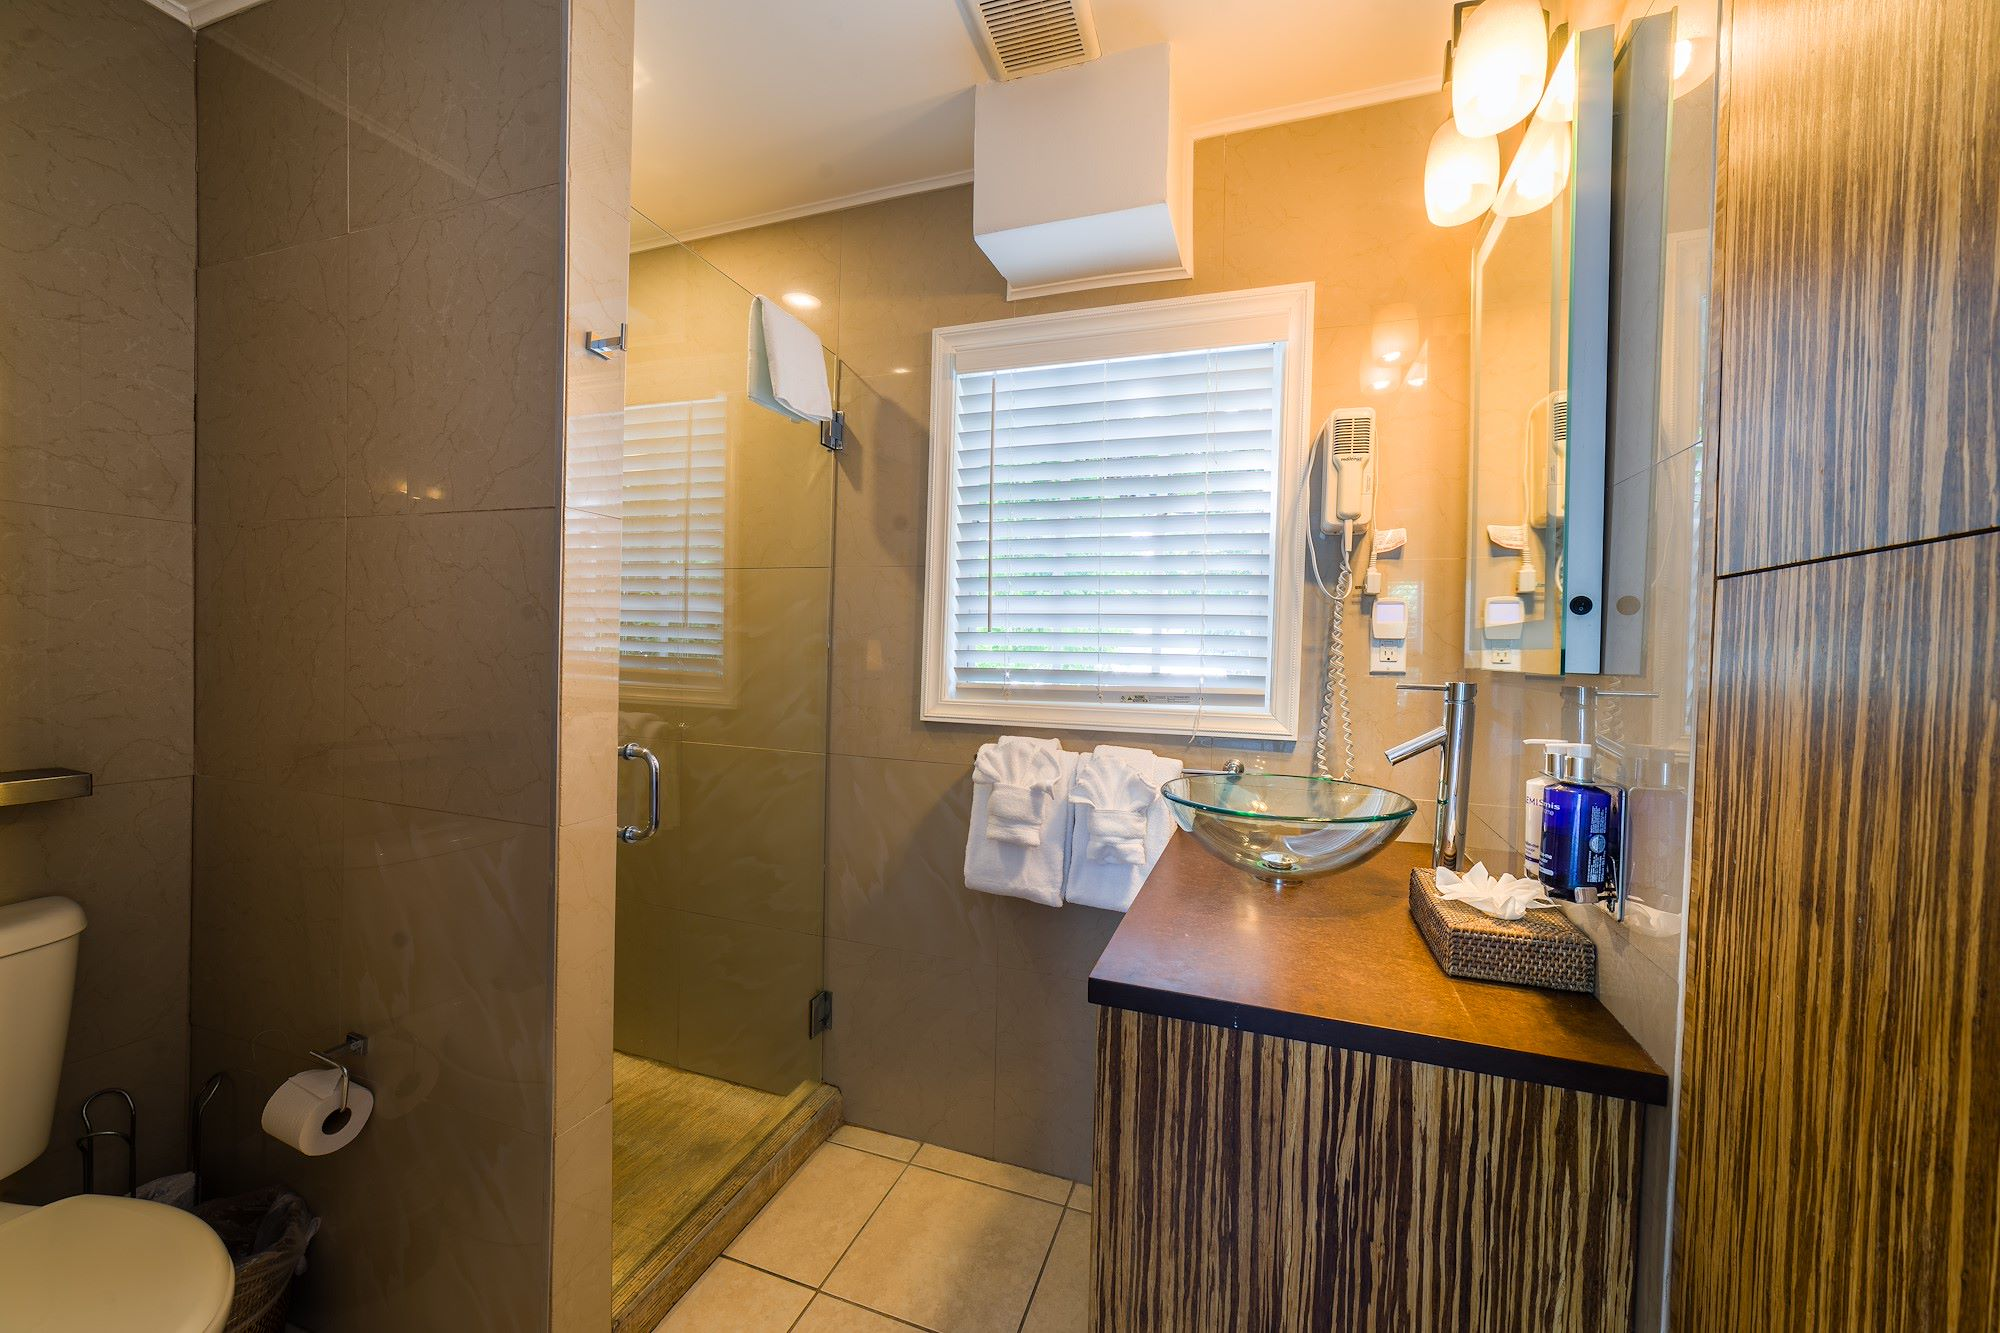 Bathroom of Our Key West Deluxe Queen Room with Patio